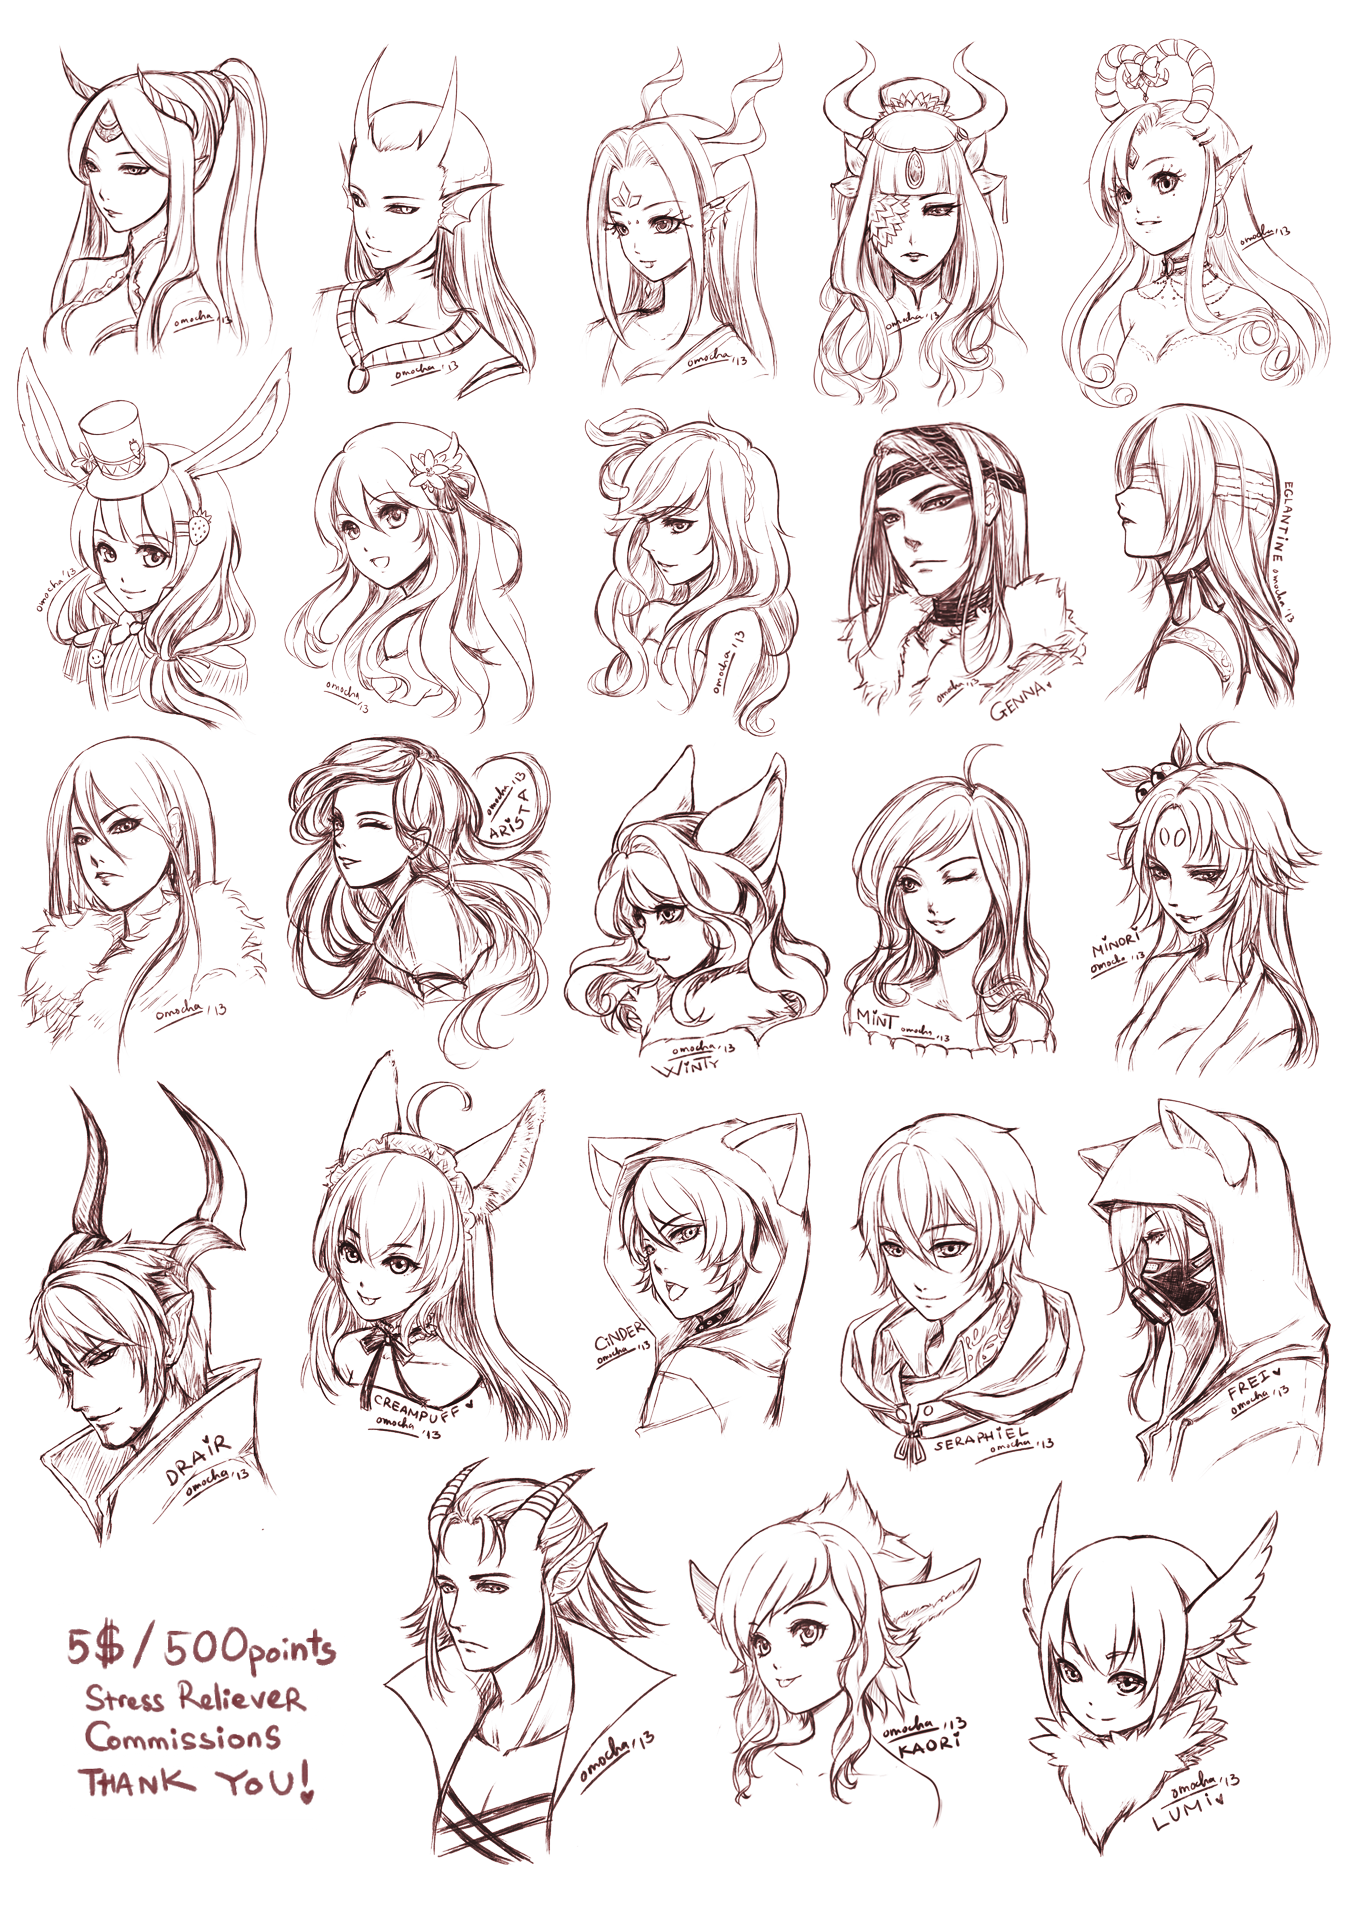 Anime Drawing Of Elves And Hiar Styles By =omochasan On Deviantart